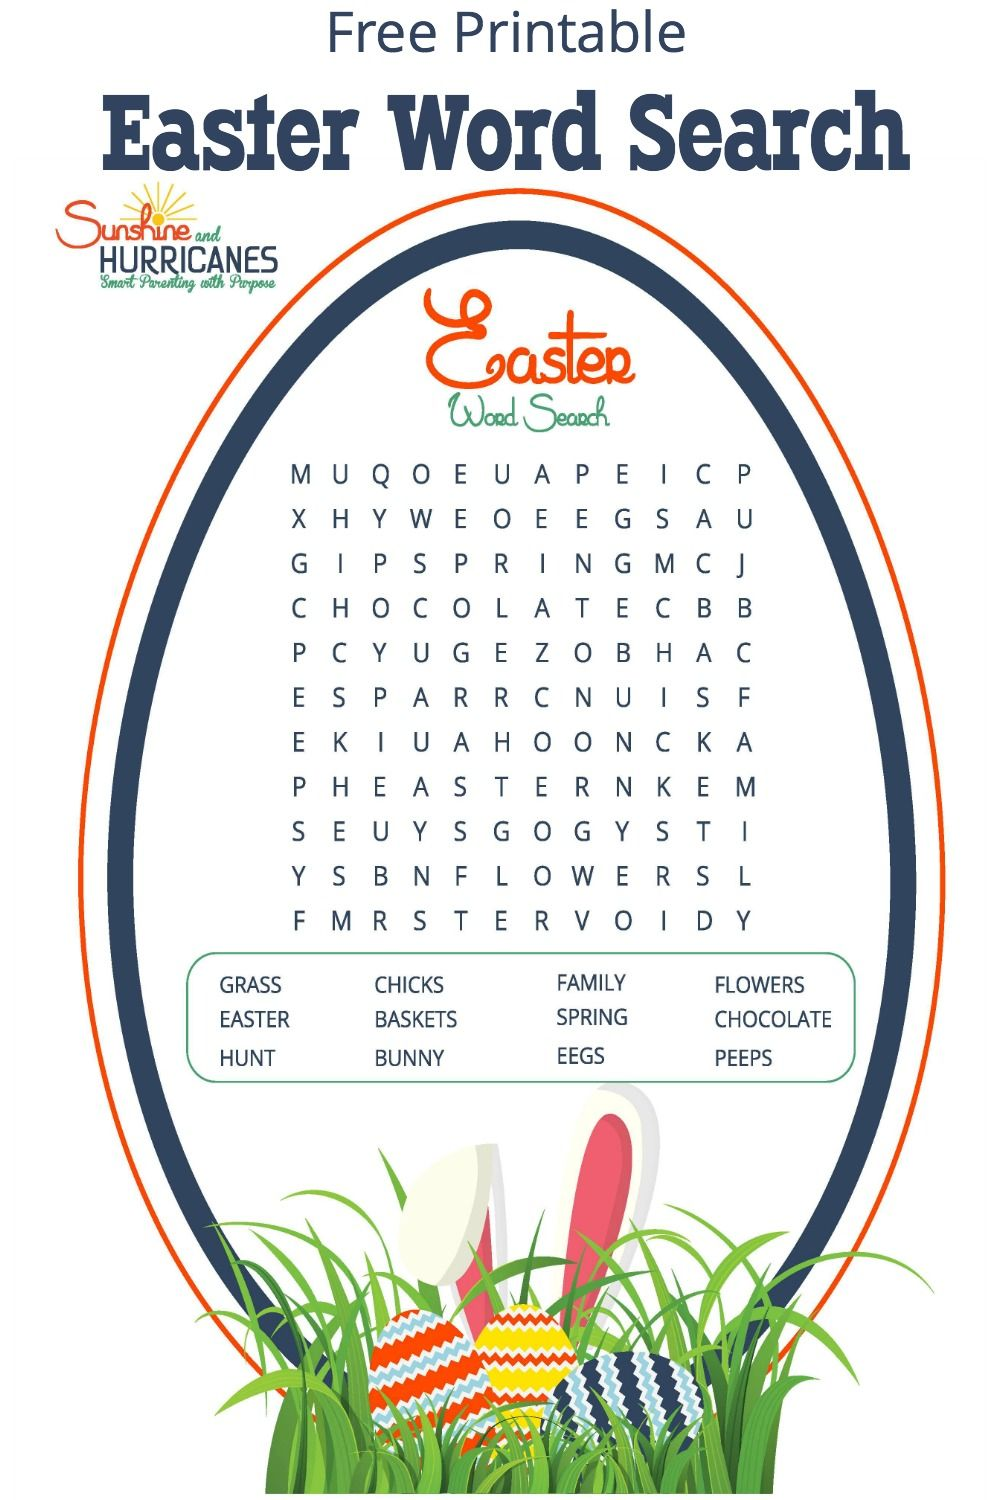 Easter Word Search Easter party, Word search and Free